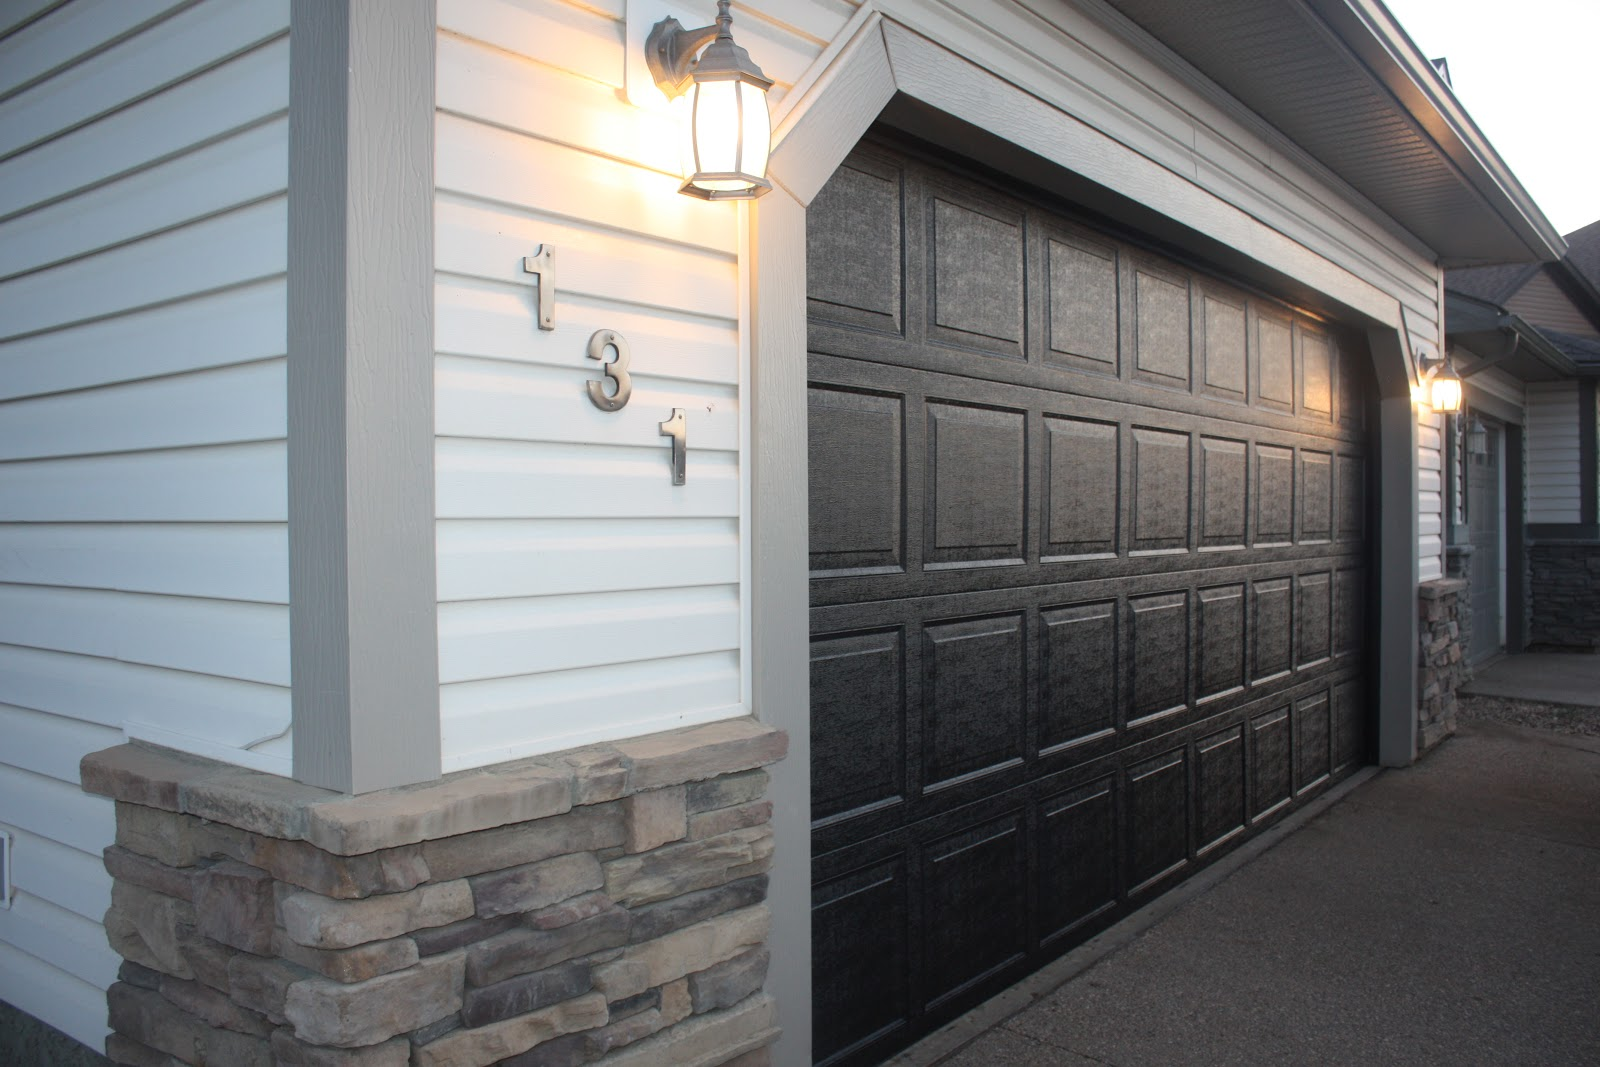 She Re-Purposed It: How to paint your garage & front door!